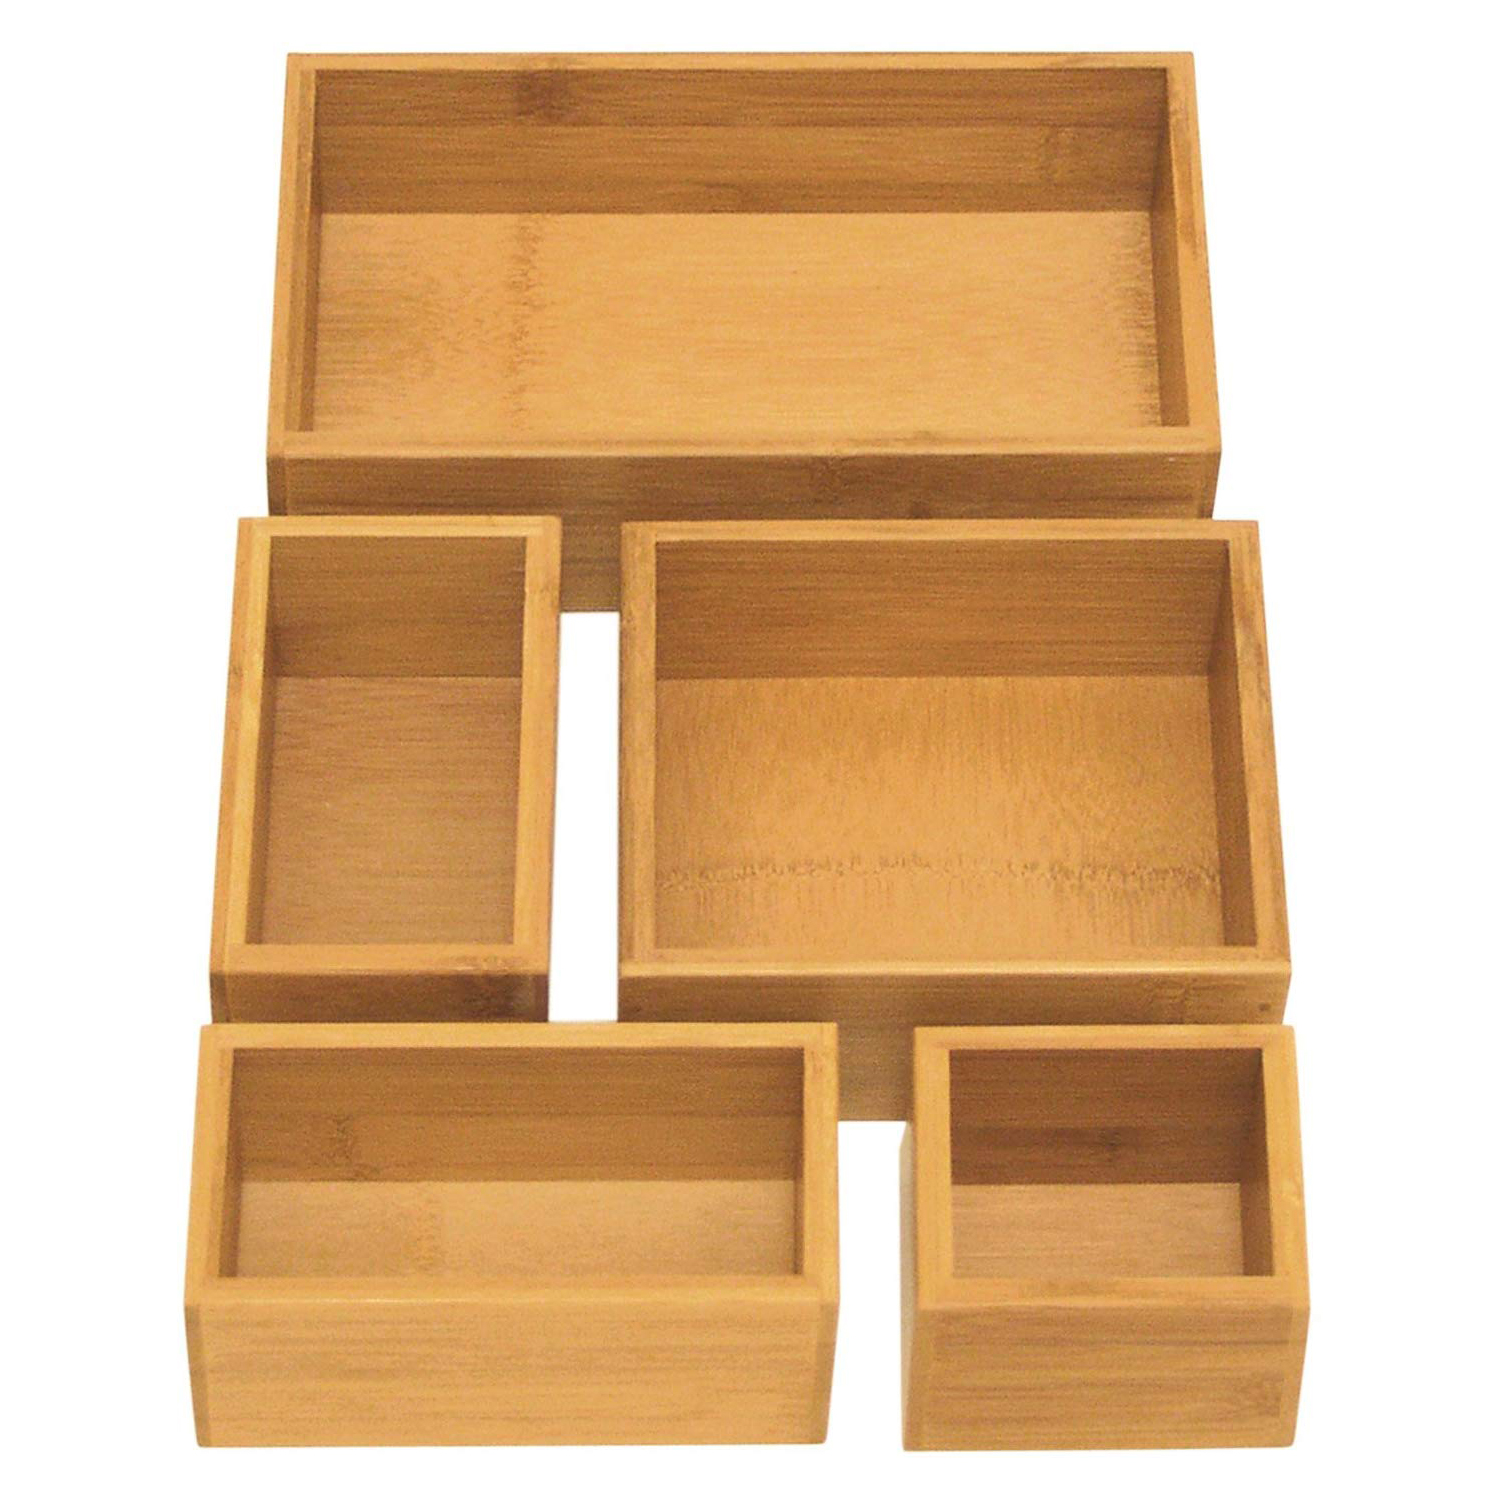 Seville Classics Five-Piece Bamboo Storage Set